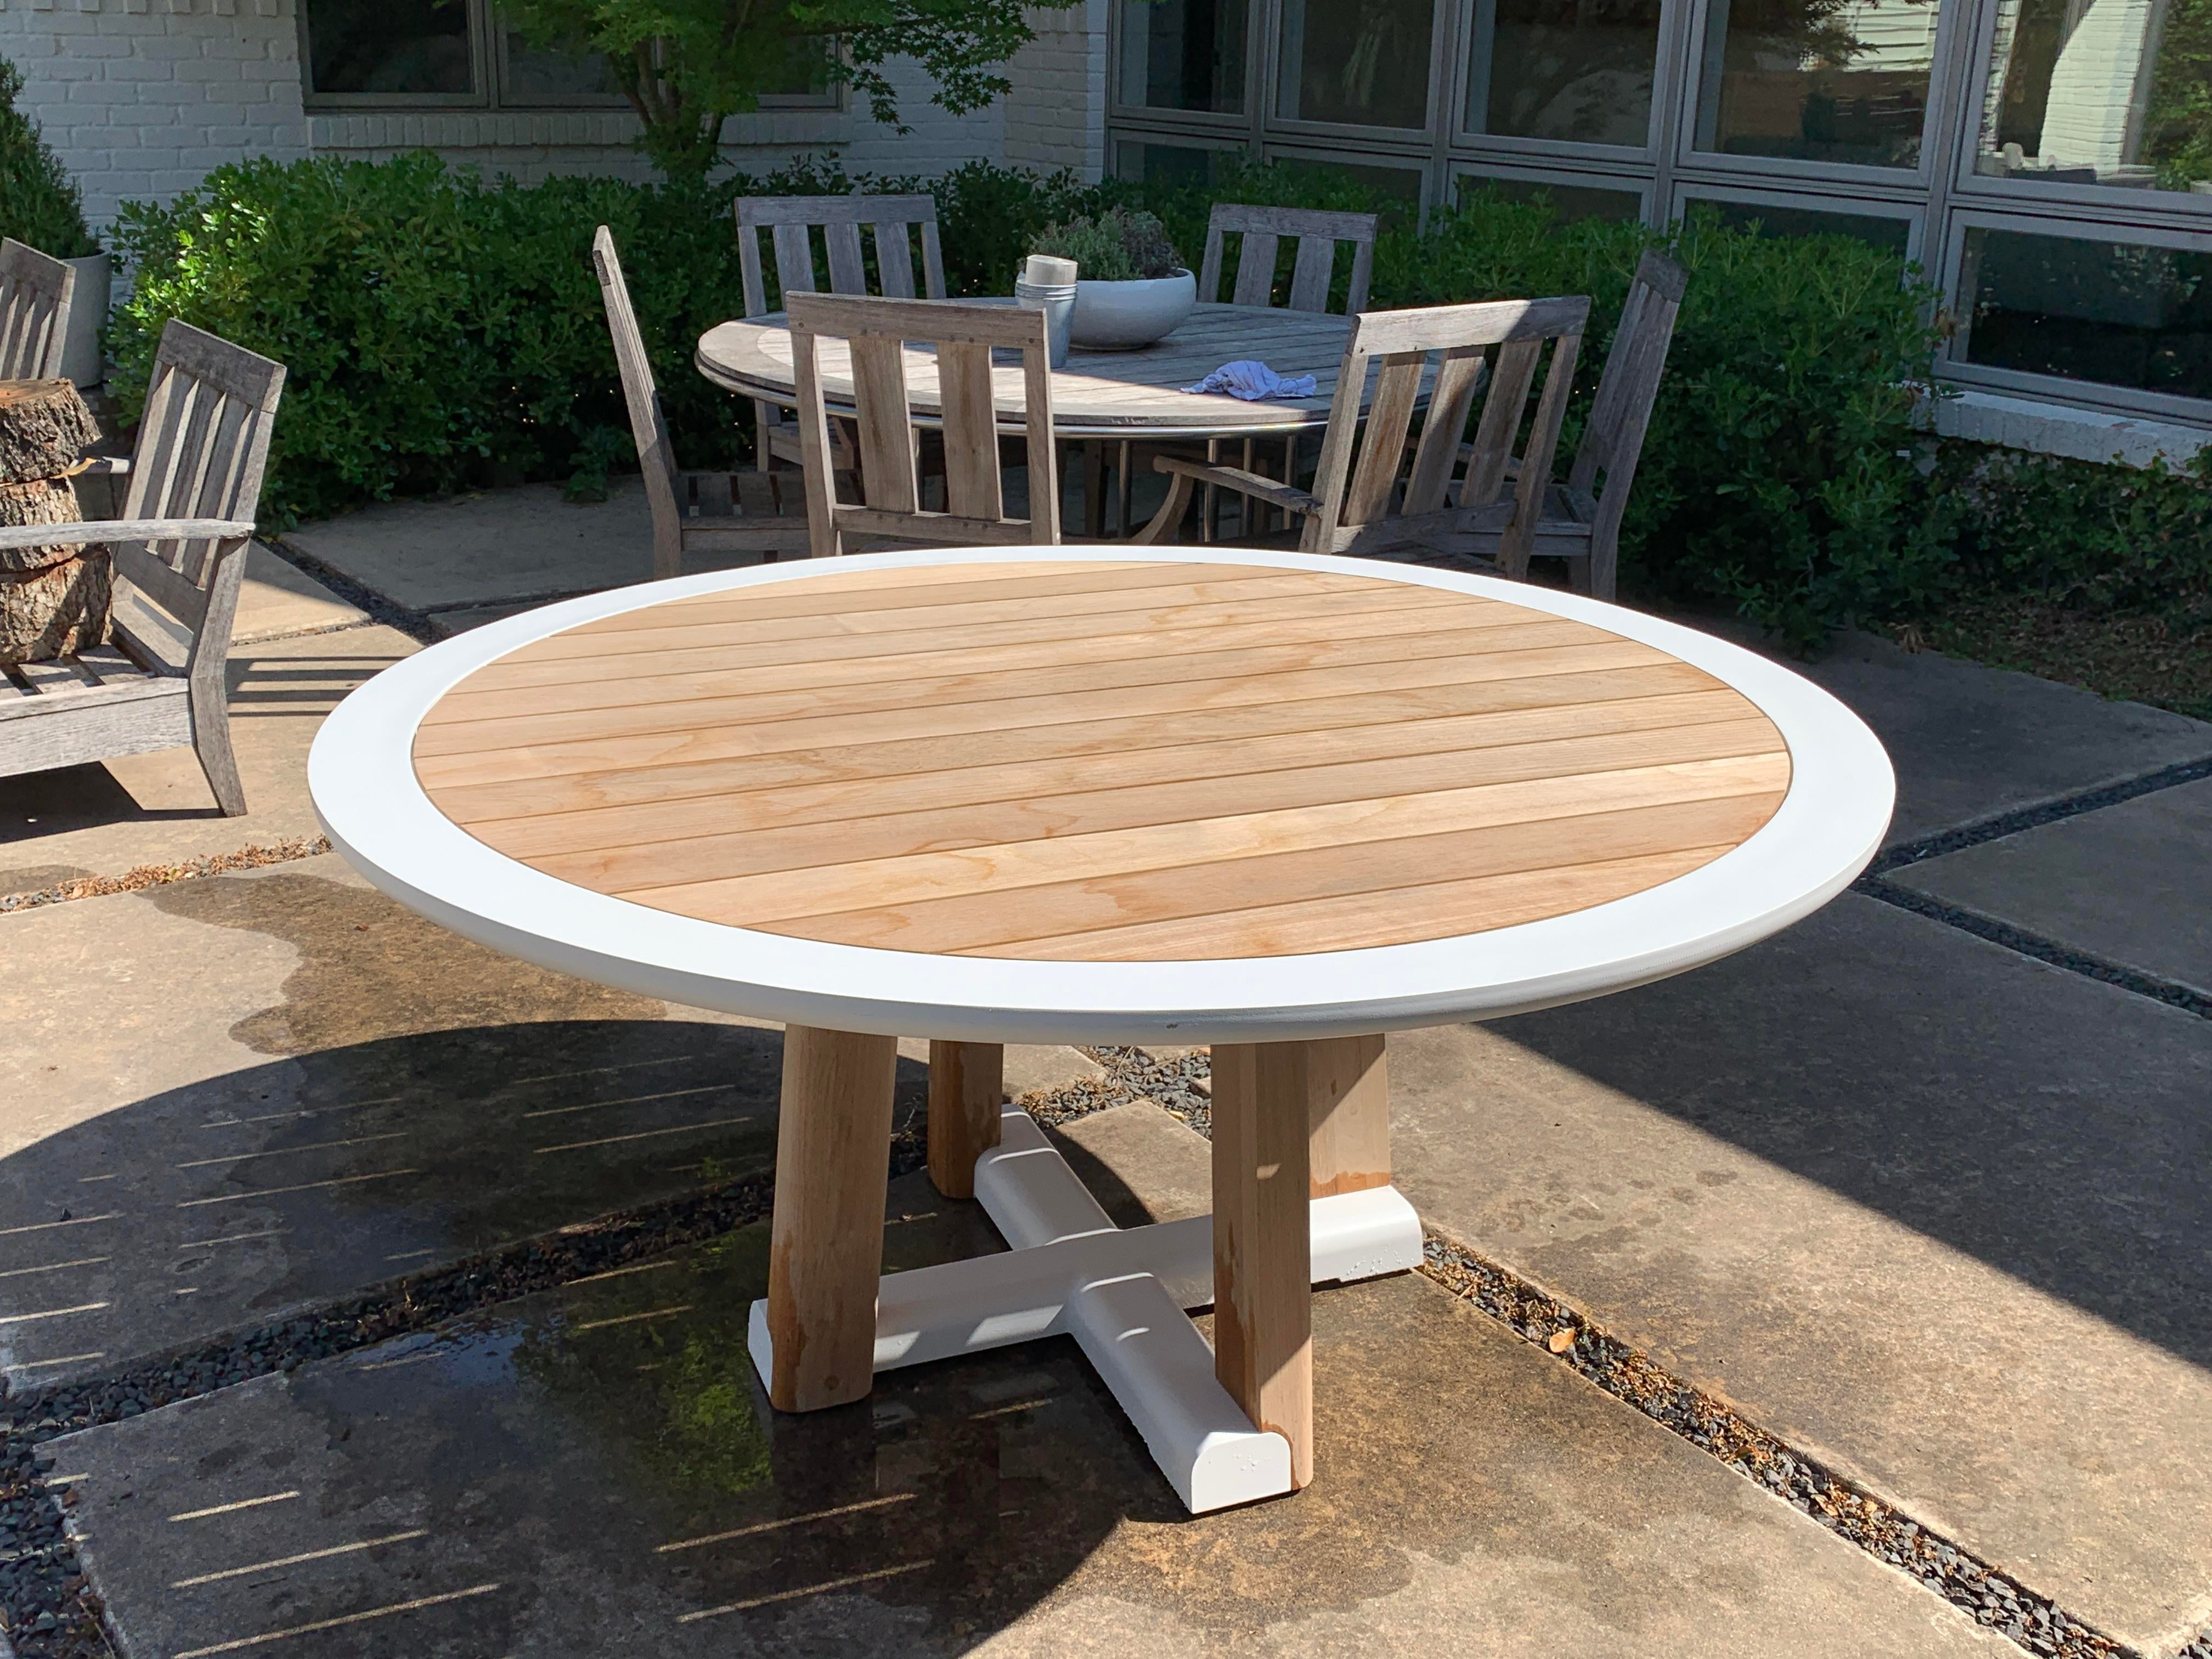 Contemporary Contemporary Sutherland Mita Round Dining Table For Sale    Image 3 Of 3